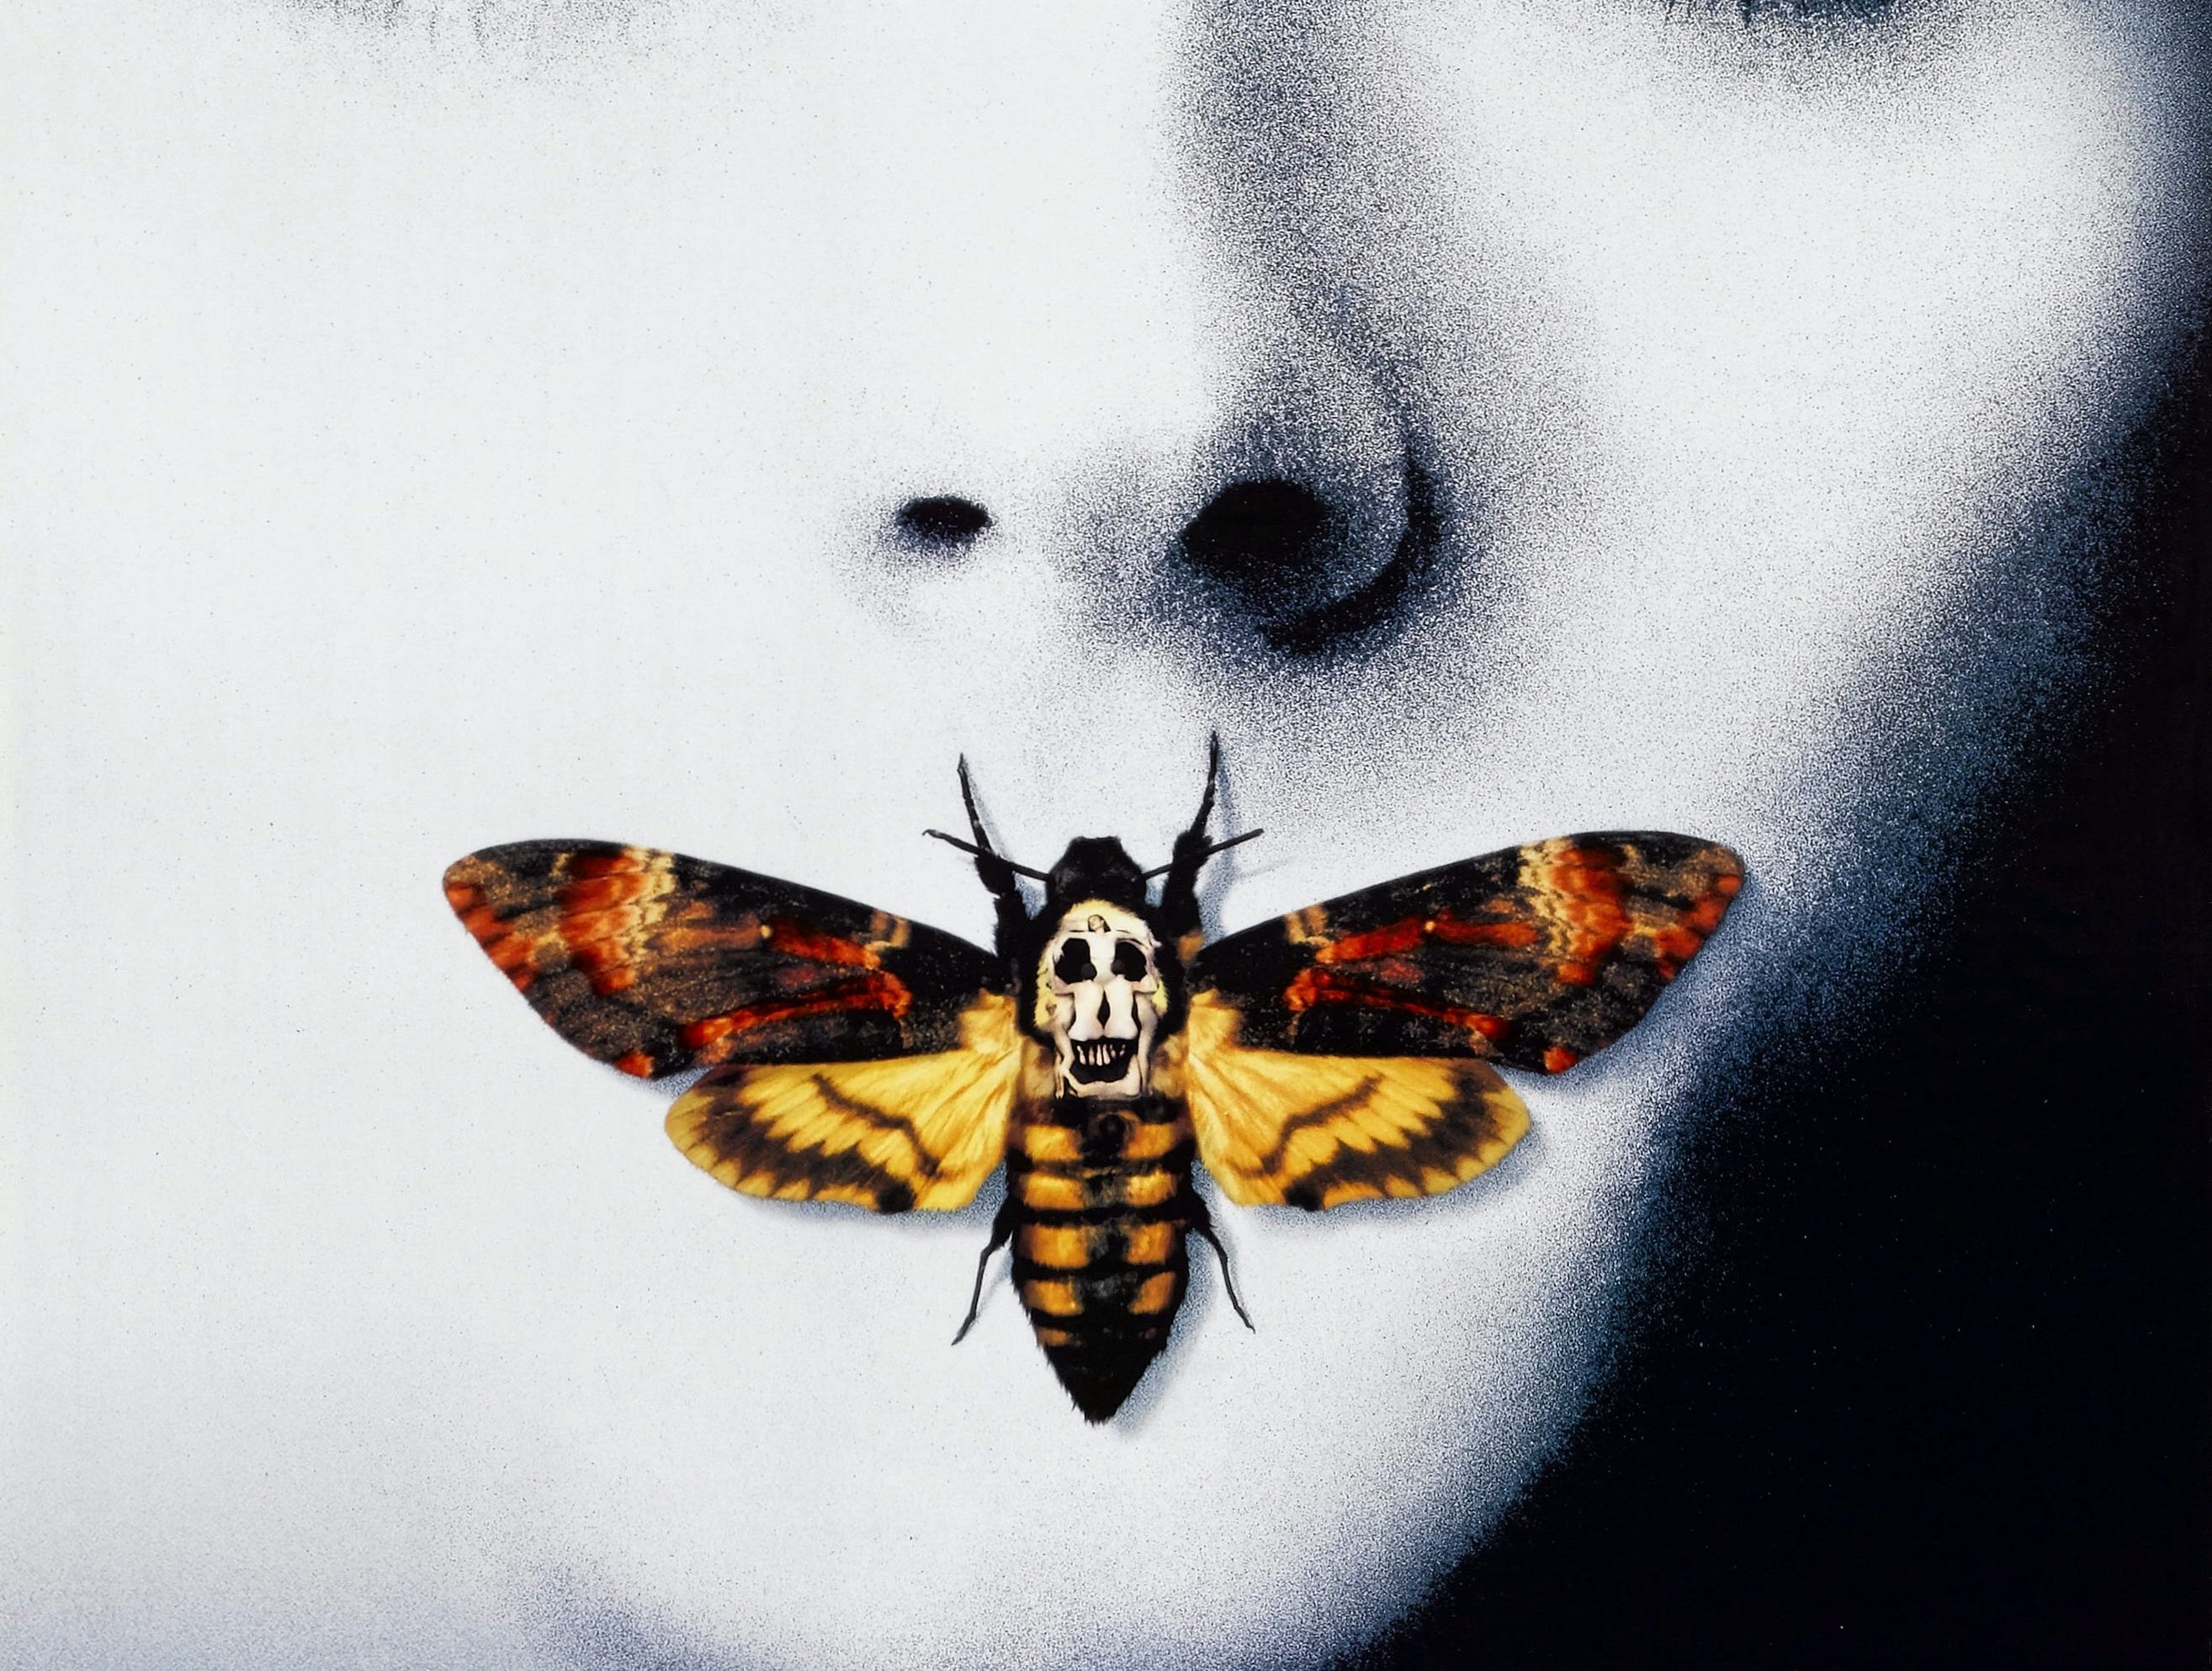 """The Silence of the Lambs"" (1991) - The movie that made fava beans and Chianti  acceptable sides liver stars Jodei Foster and Anthony Hopkins as the cannibal killer Hannibal Lecter."